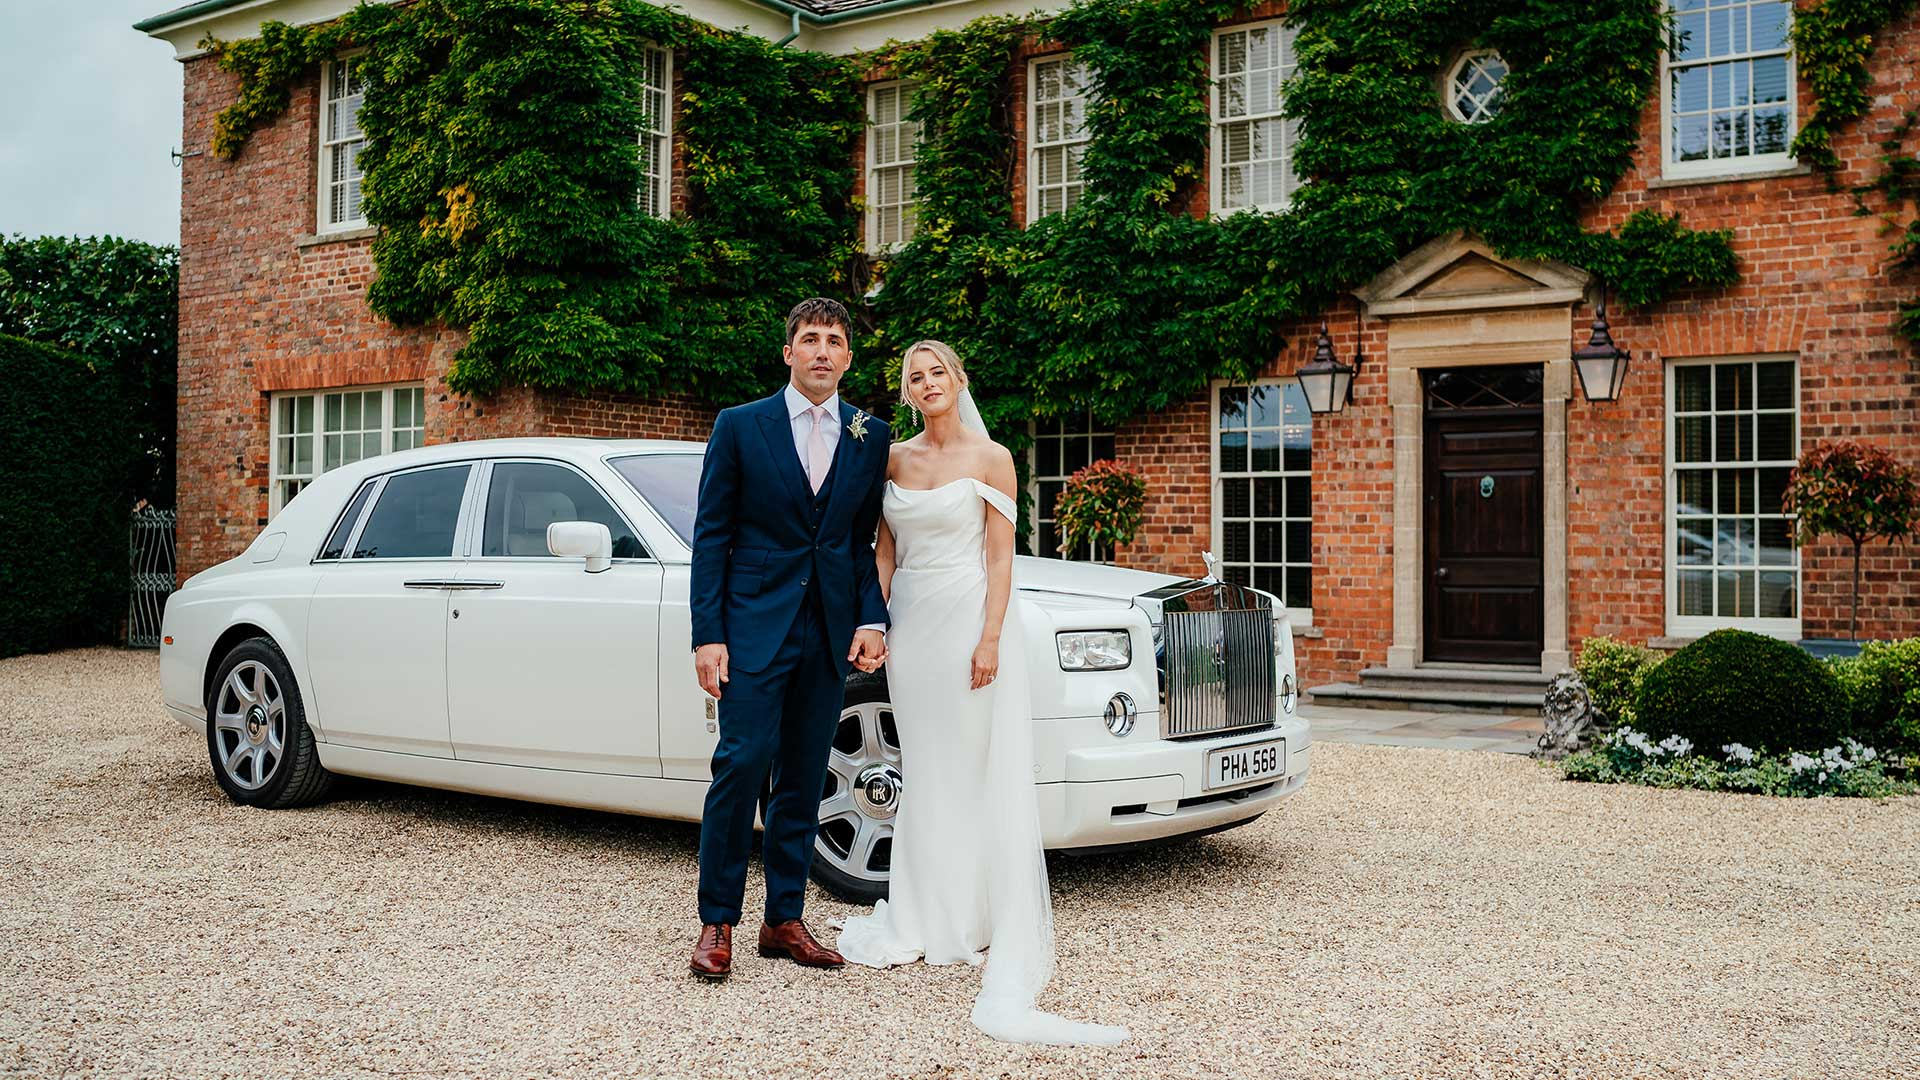 Gavin and Katie with the Rolls-Royce Phantom in White